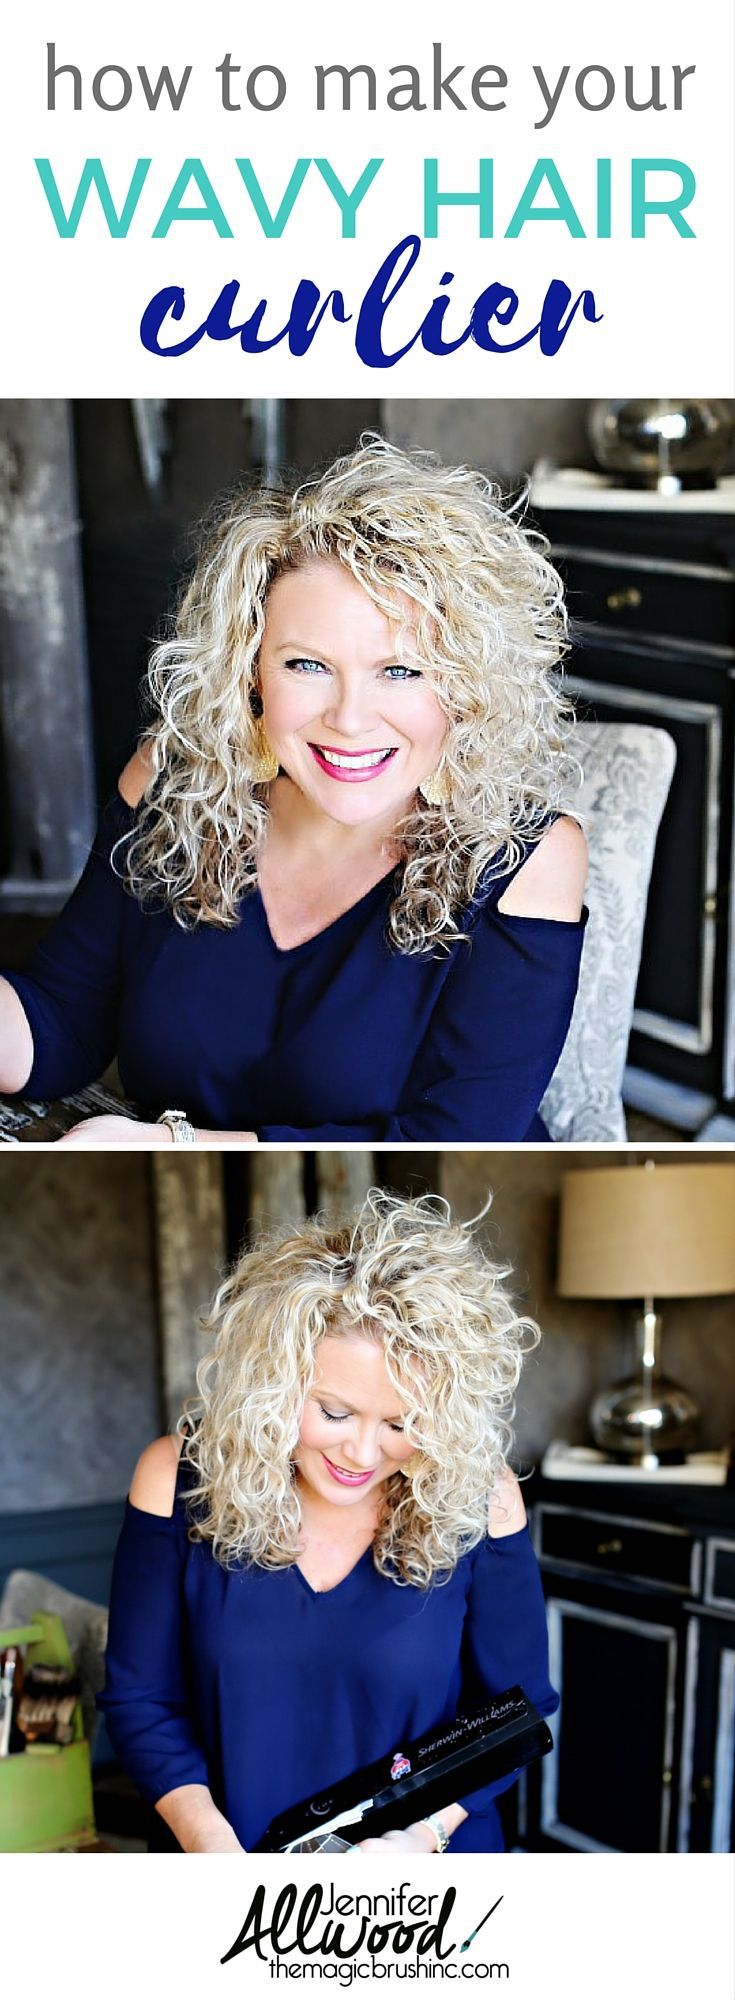 How to make your wavy hair curlier! Best products and tips for getting curls out of your natural waves. Hair advice from DIYer Jennifer Allwood of theMagicBrushinc.com